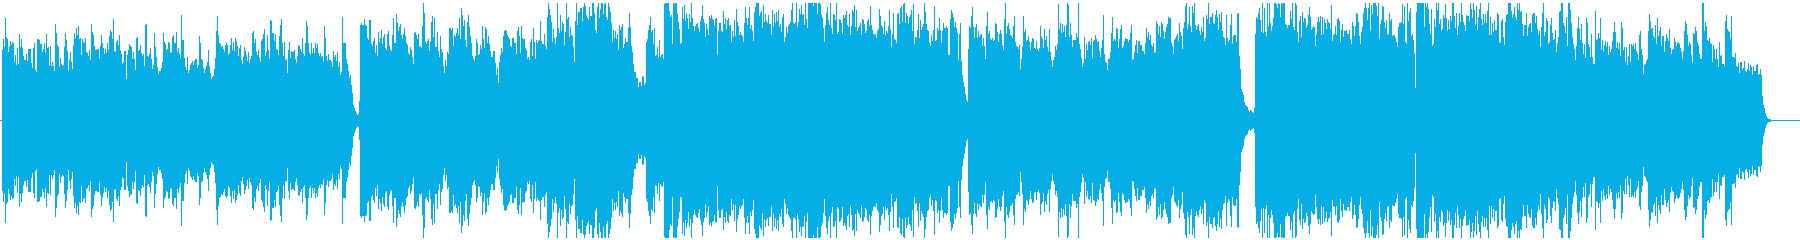 Dramatic, story-like BGM's reproduced waveform